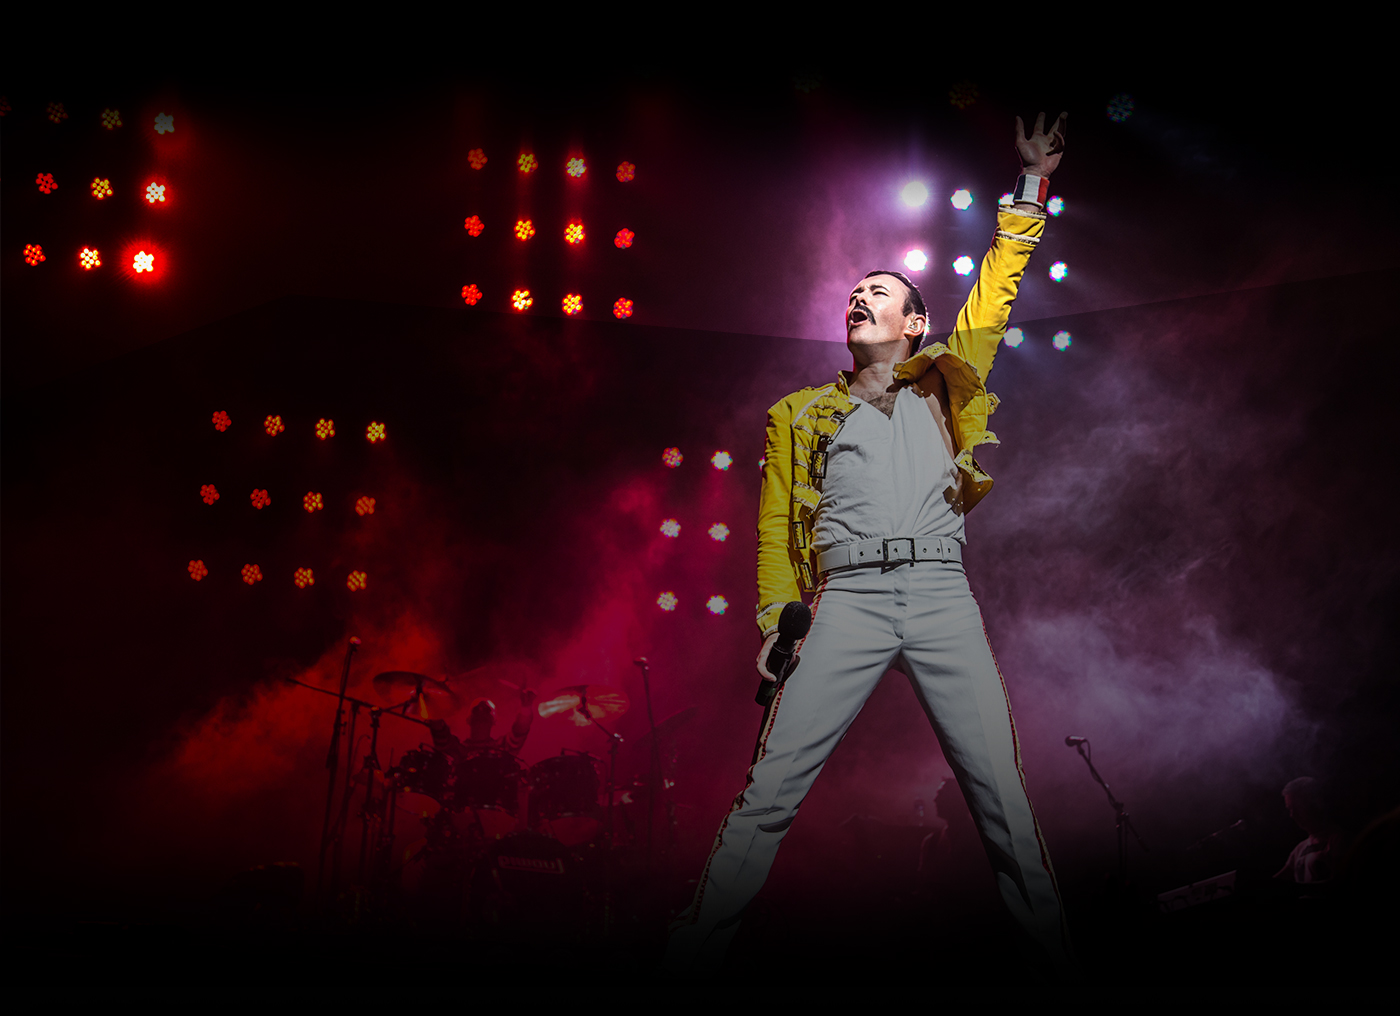 One Night of Queen image